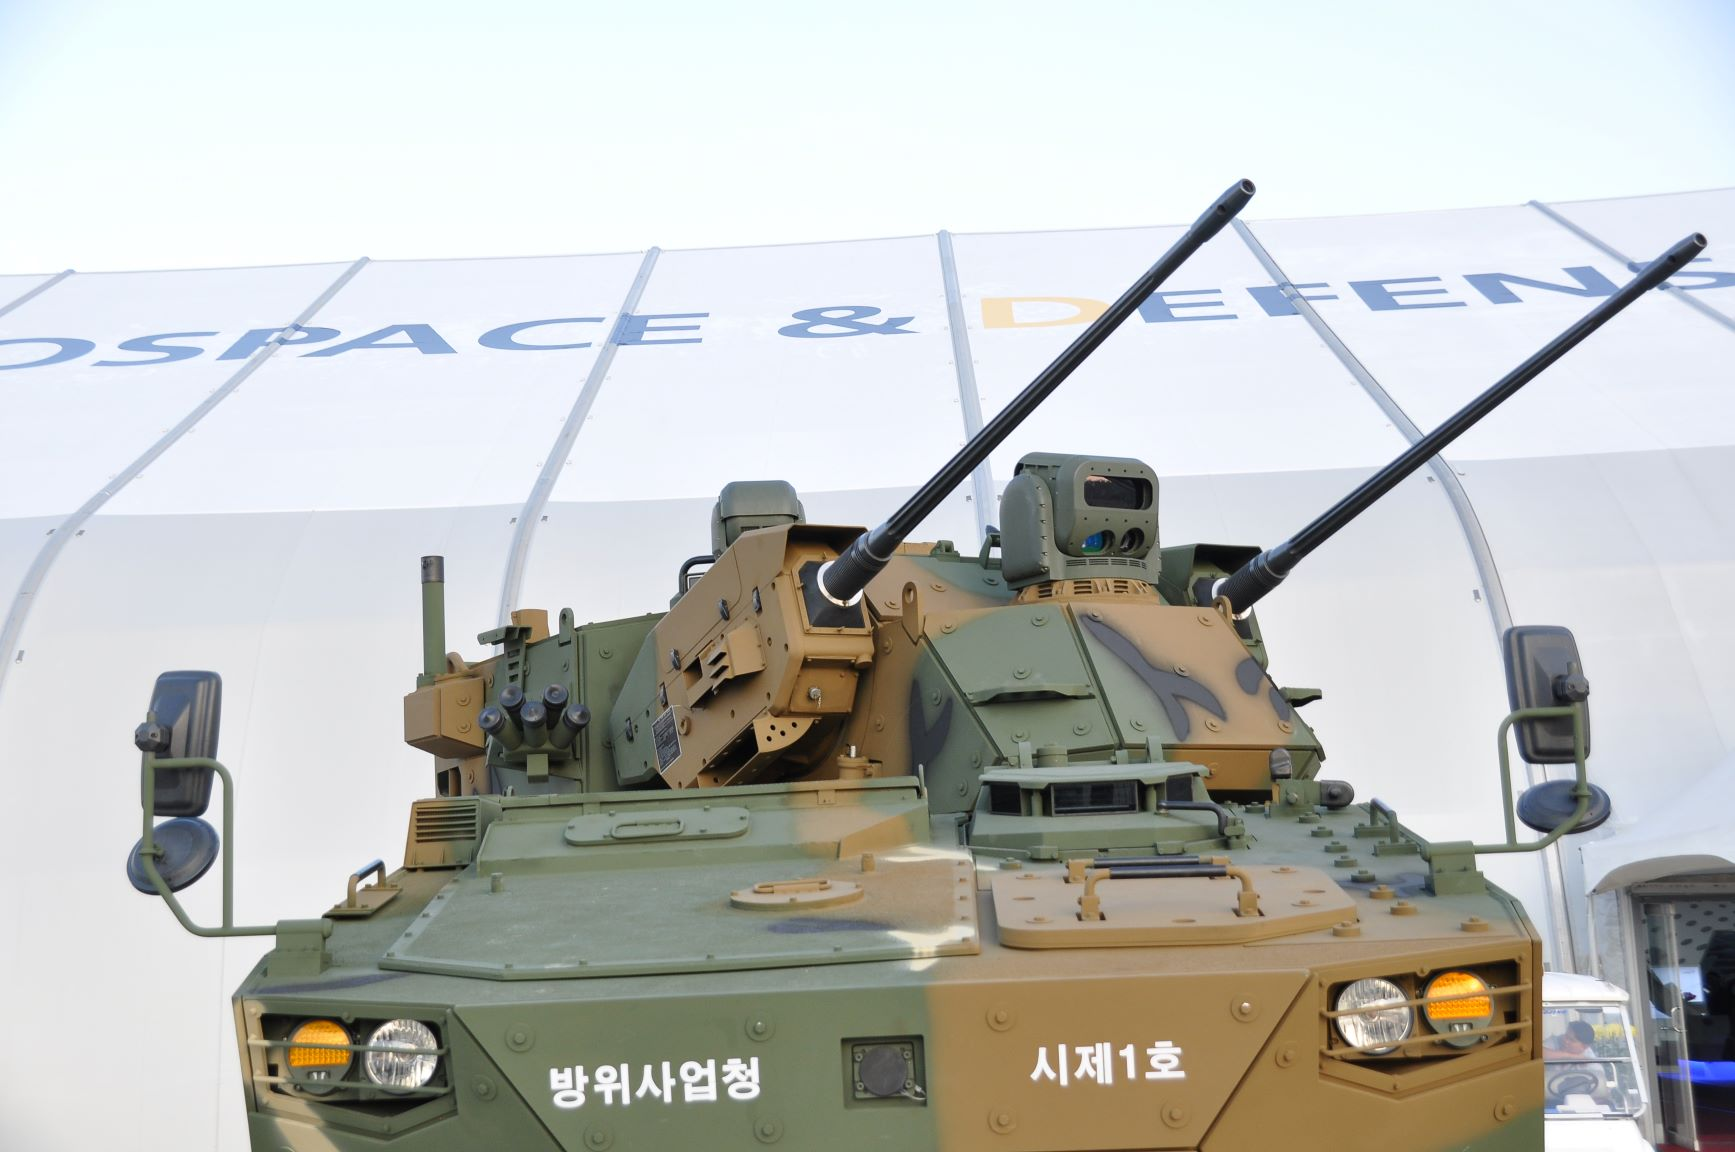 South Korea's ADEX 2019 Reveals Ambition Of Global Weapon Market Leadership